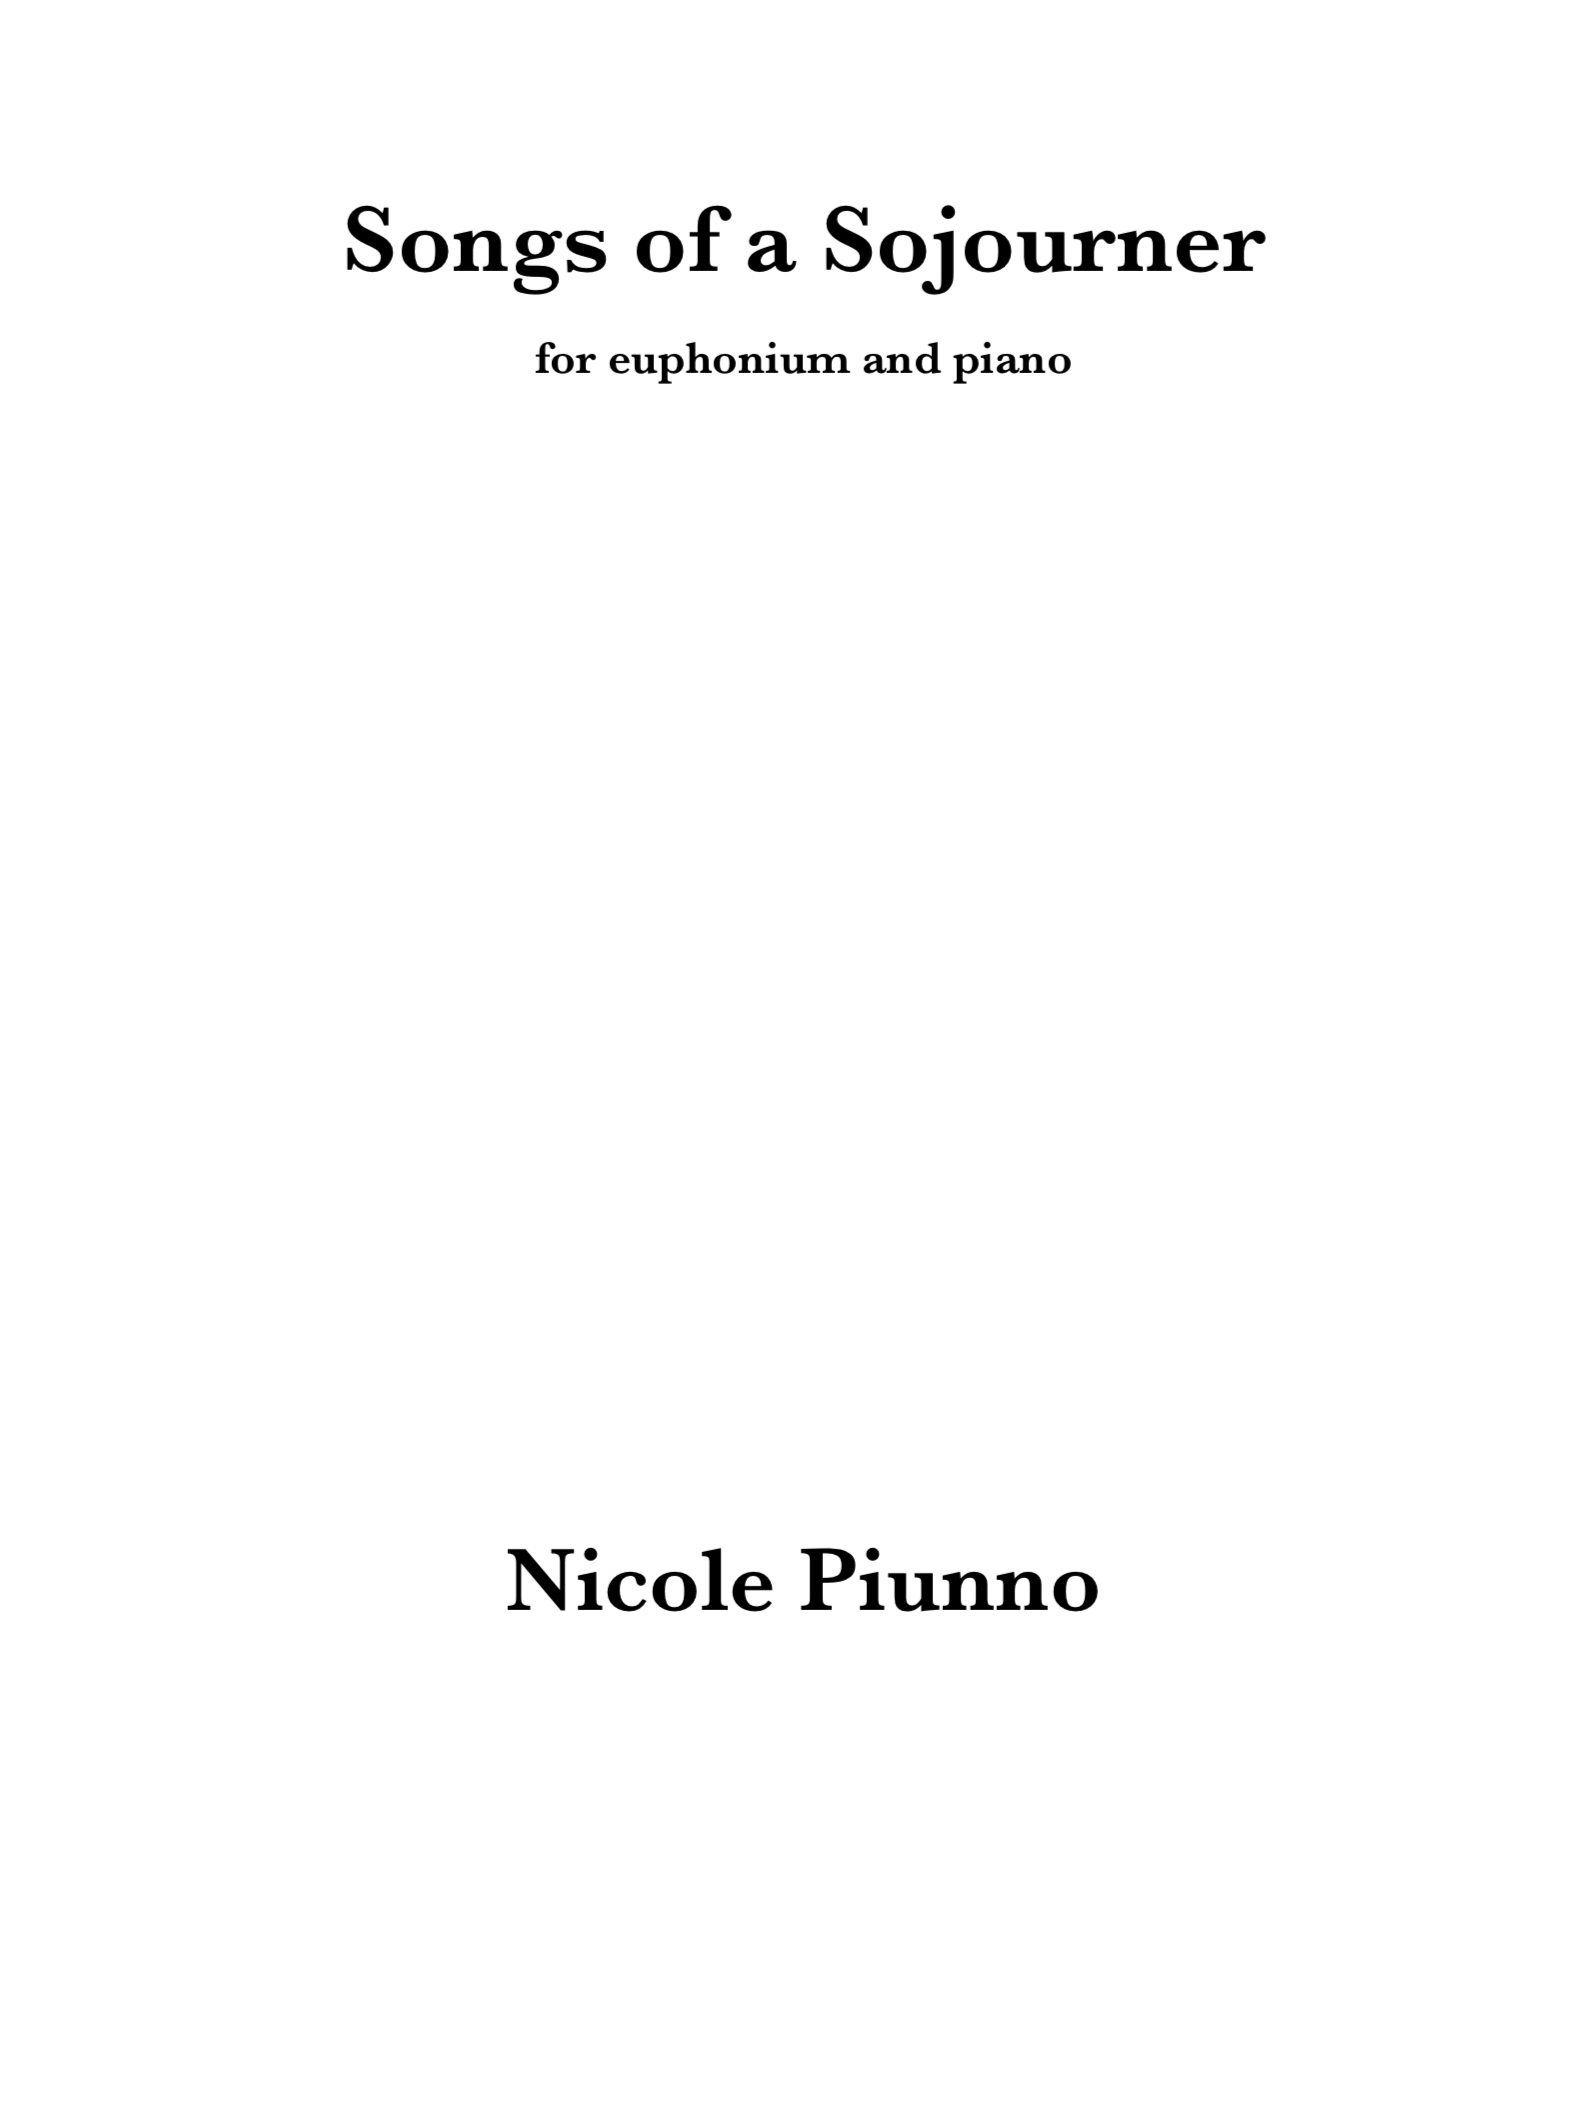 Songs Of A Sojourner by Nicole Piunno